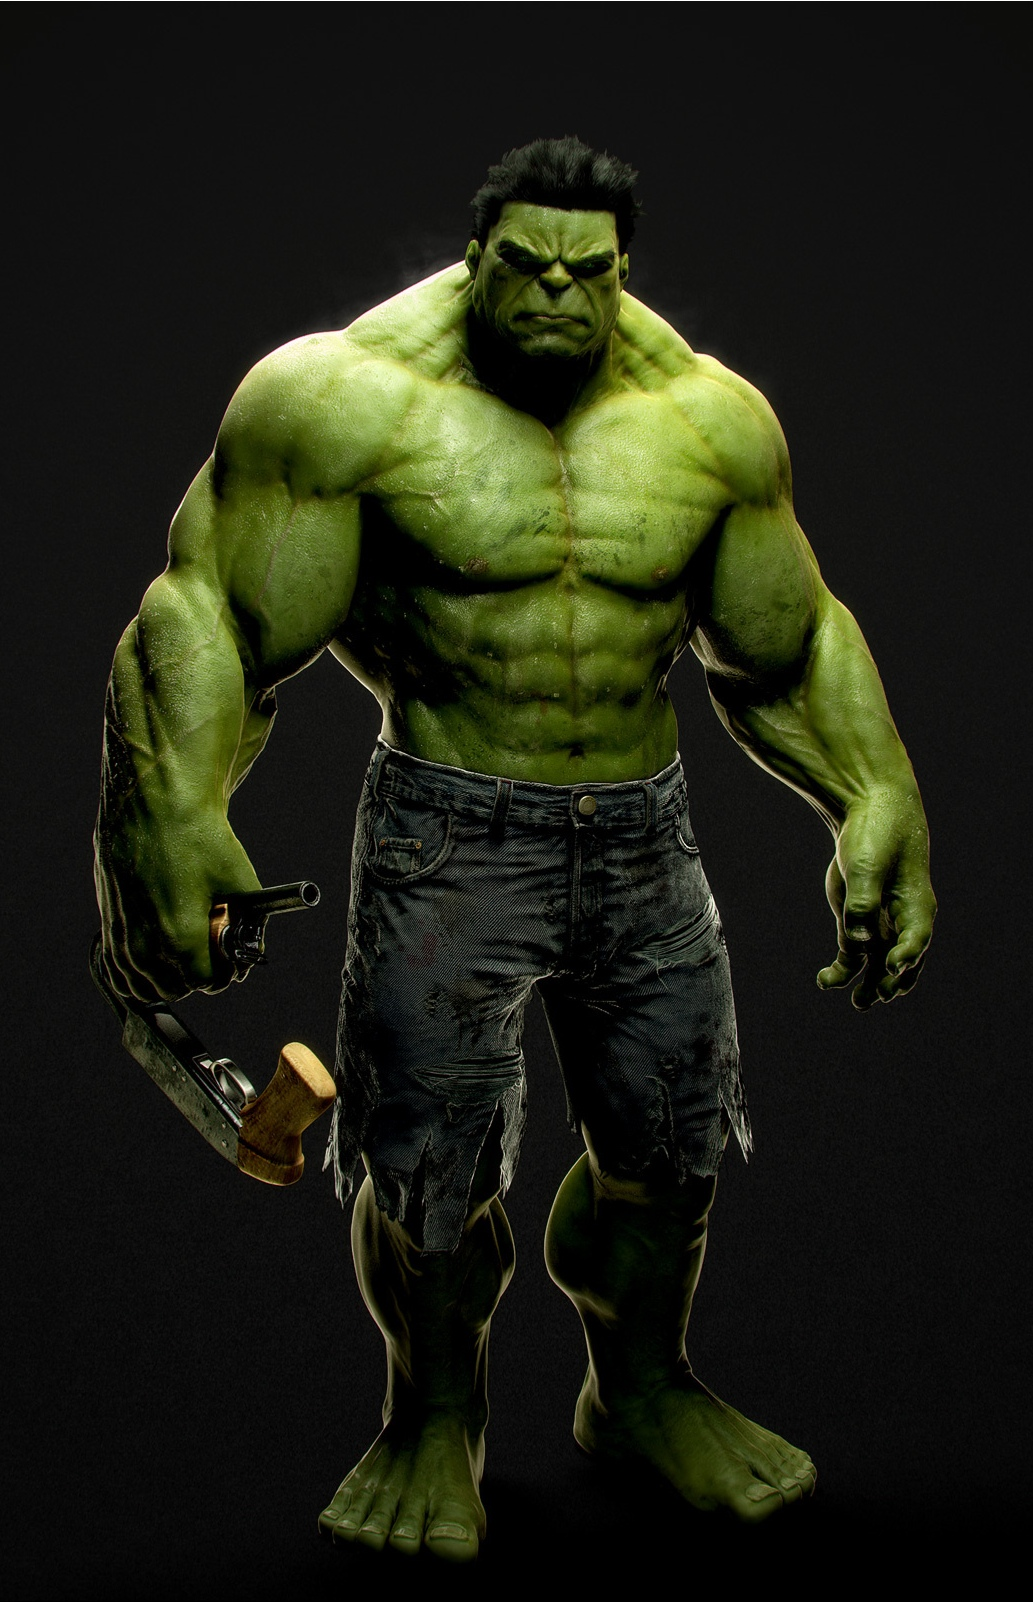 This is a graphic of Irresistible Incredible Hulk Image